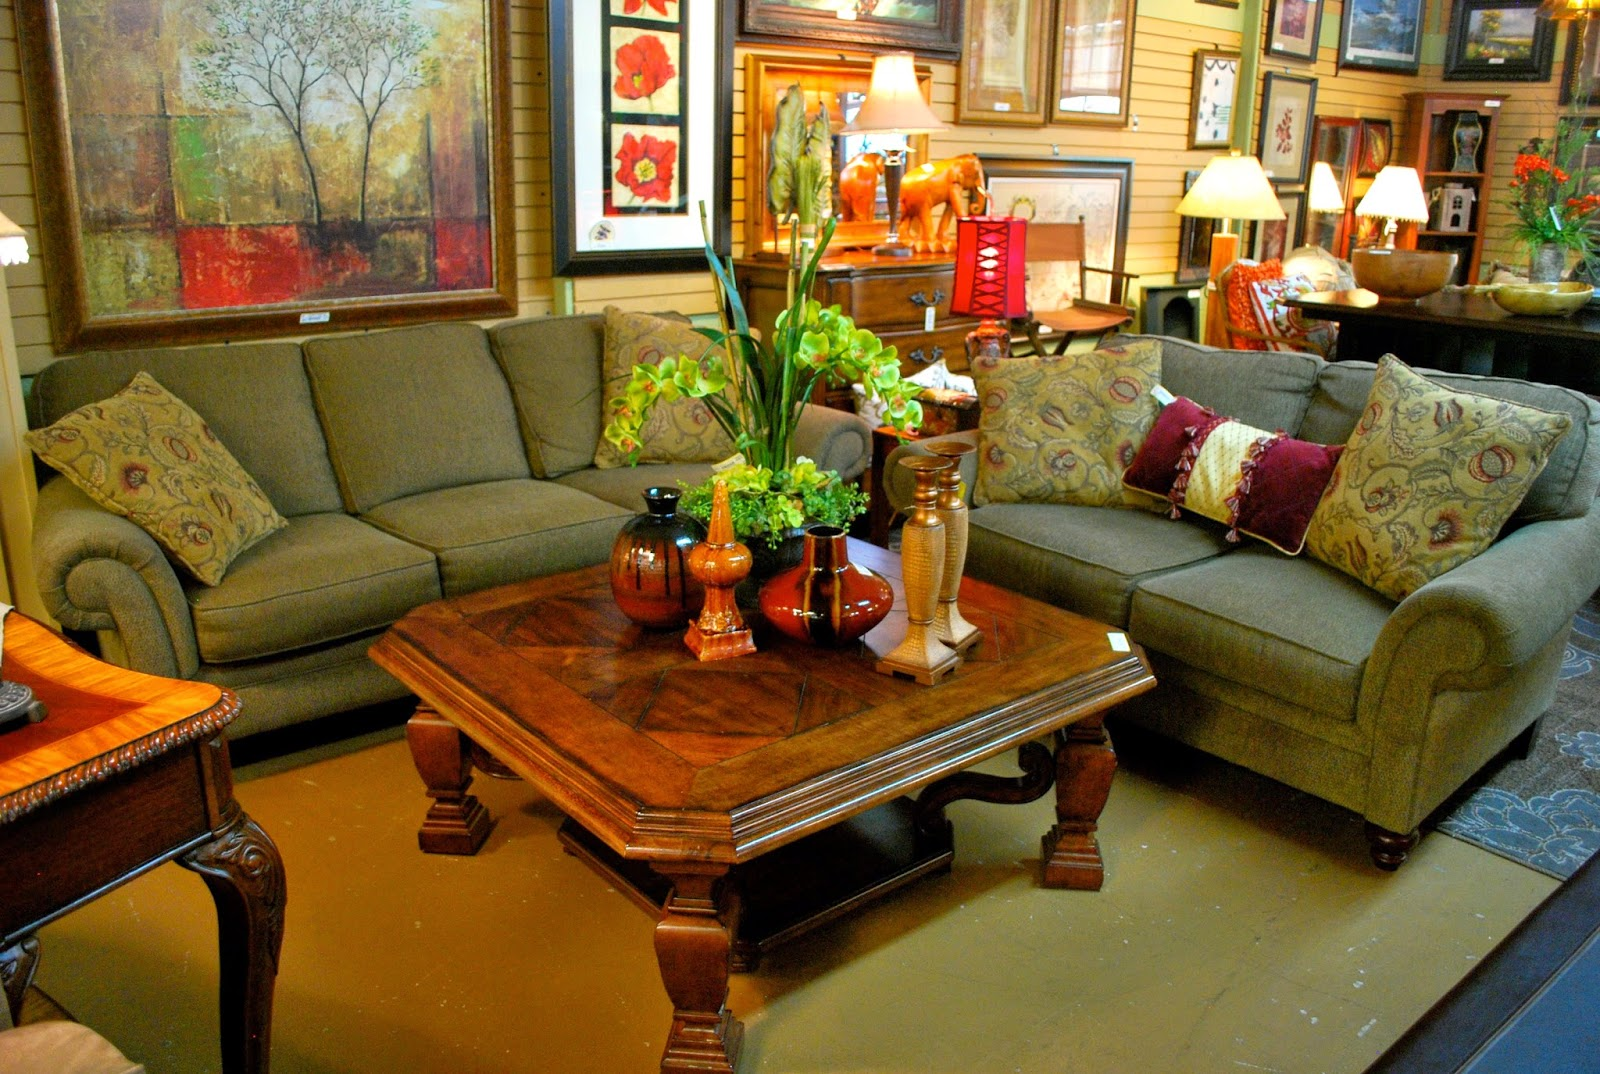 Luxury home furnishings for less at fun finds and designs atlanta consignment stores Home furniture for less